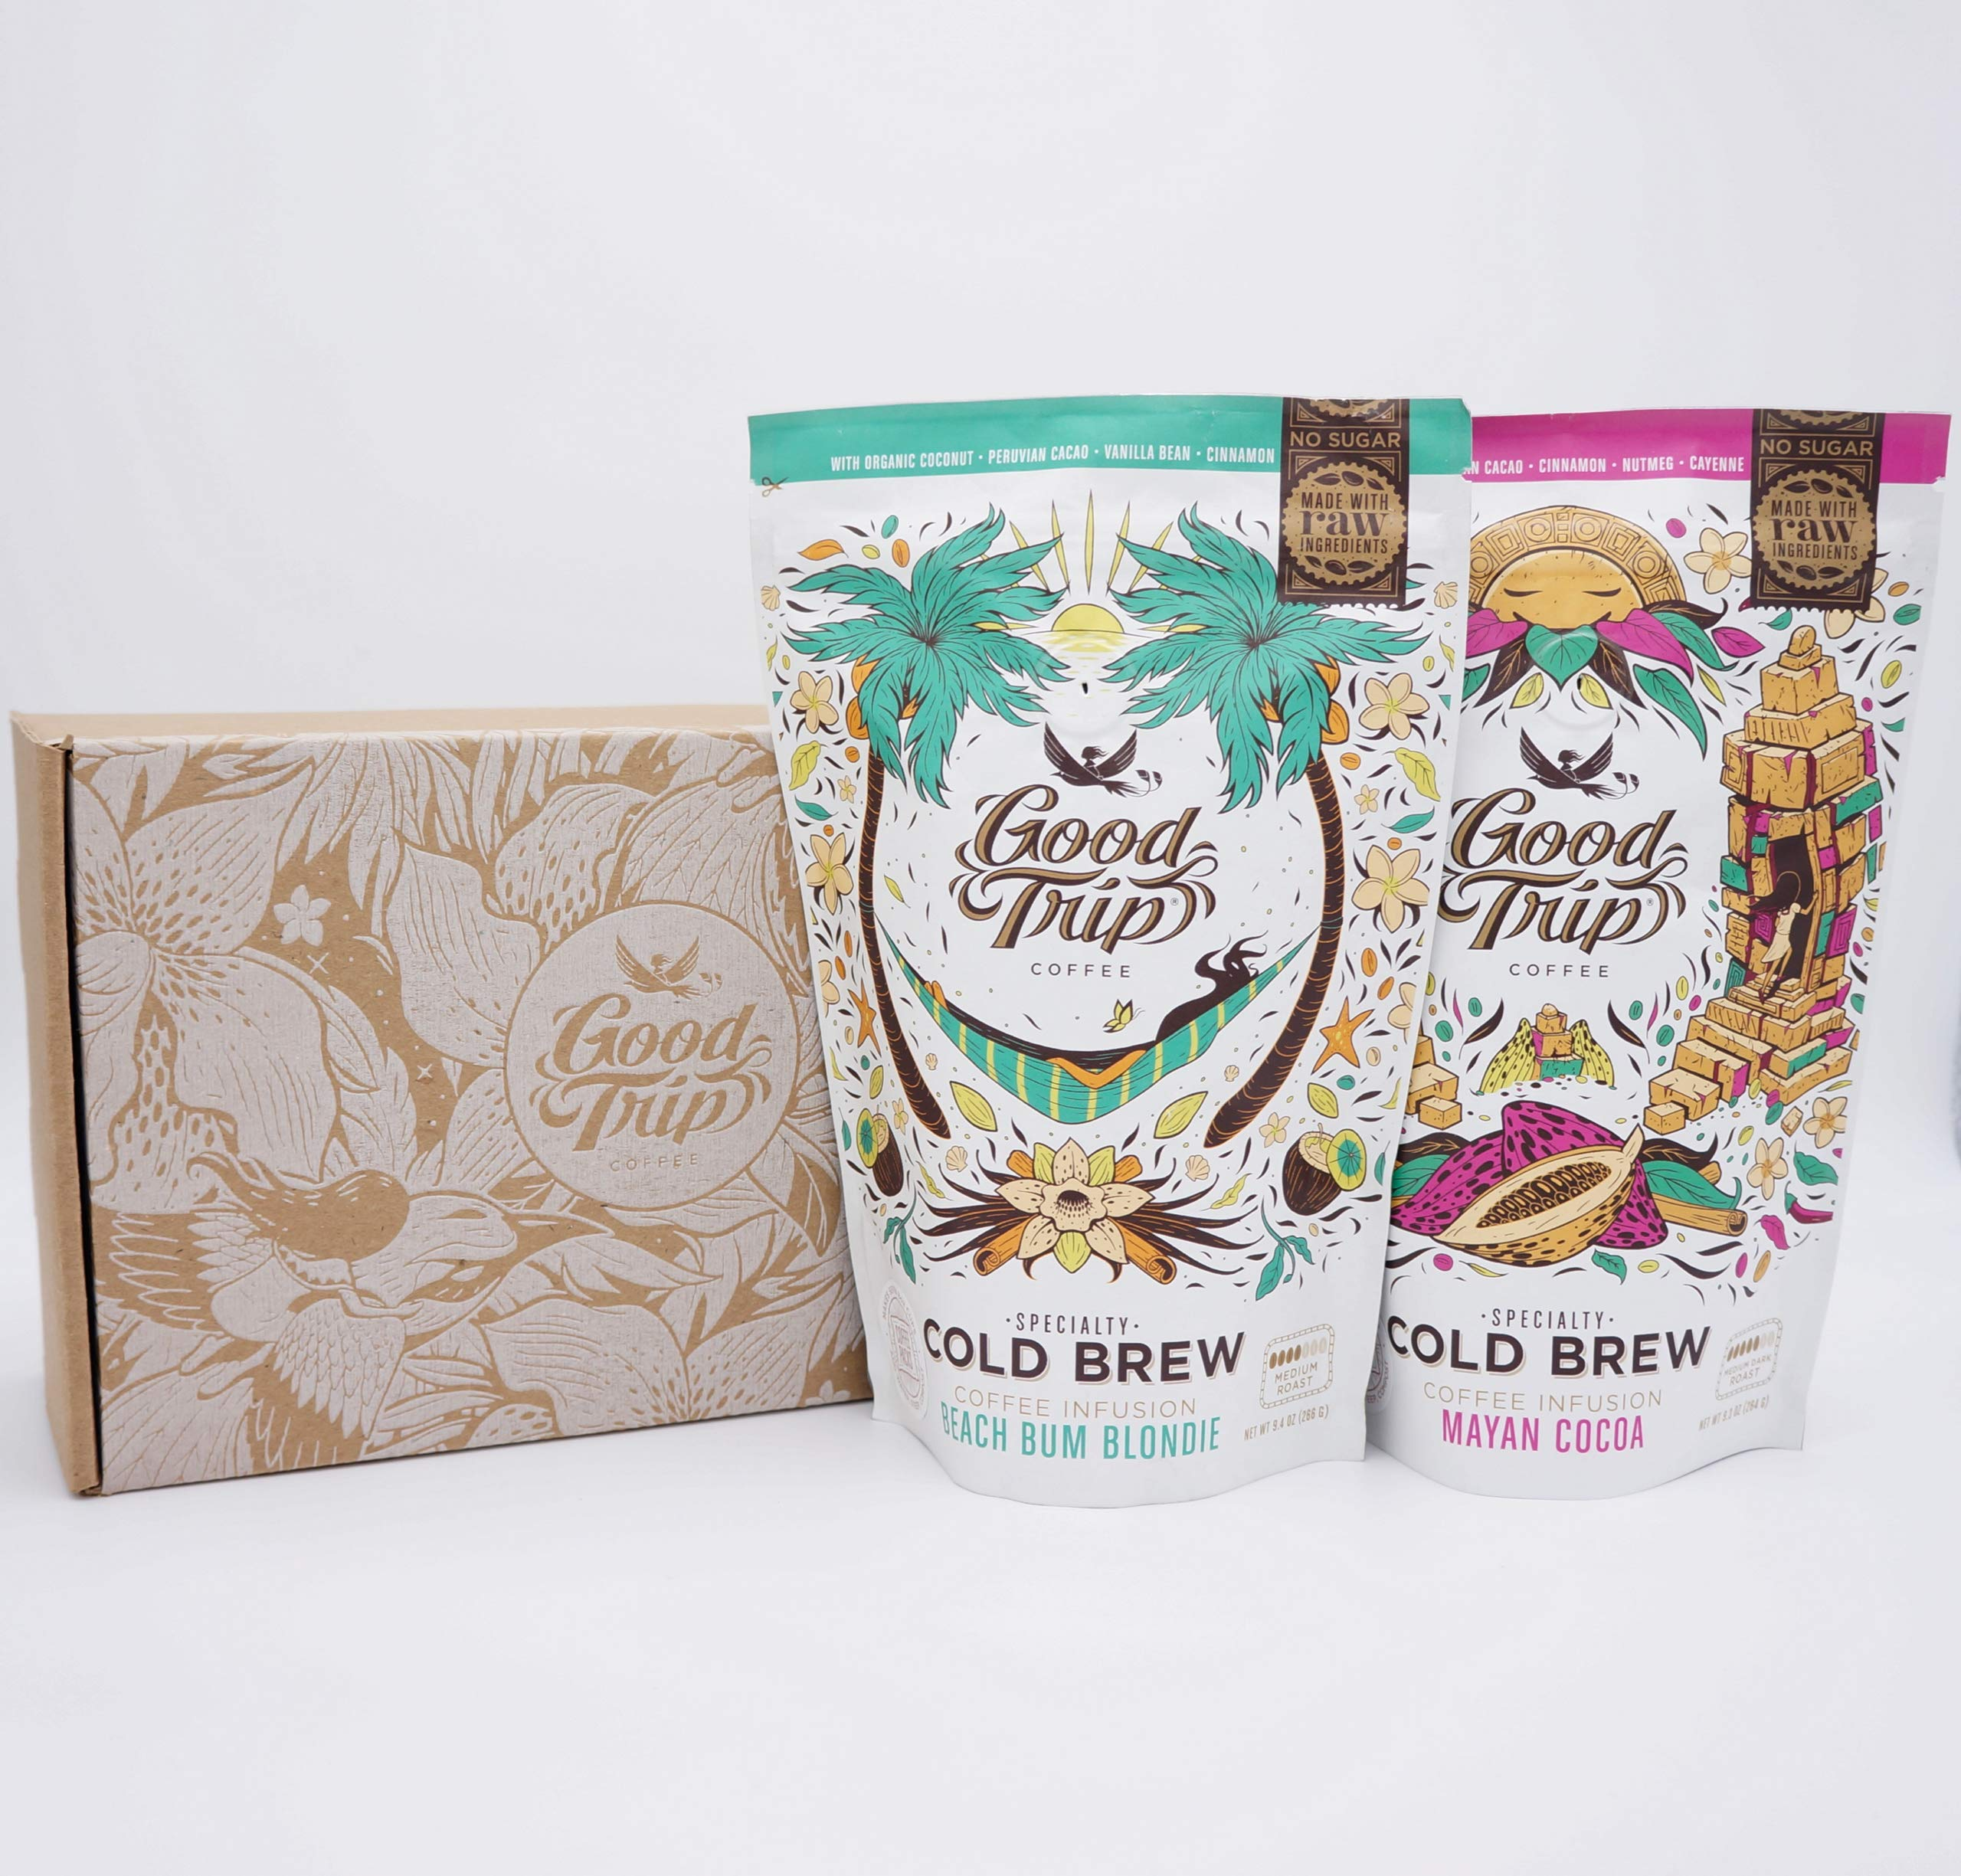 Good Trip Cold Brew Gift Set: Mayan Cocoa + Beach Bum Blondie Organic Coffee ~ As Seen in Anthropologie | Infused w/ Botanicals & Spices (Vegan, Gluten-Free, Keto, Non-GMO), 20 Cold Brew Bags by Good Trip